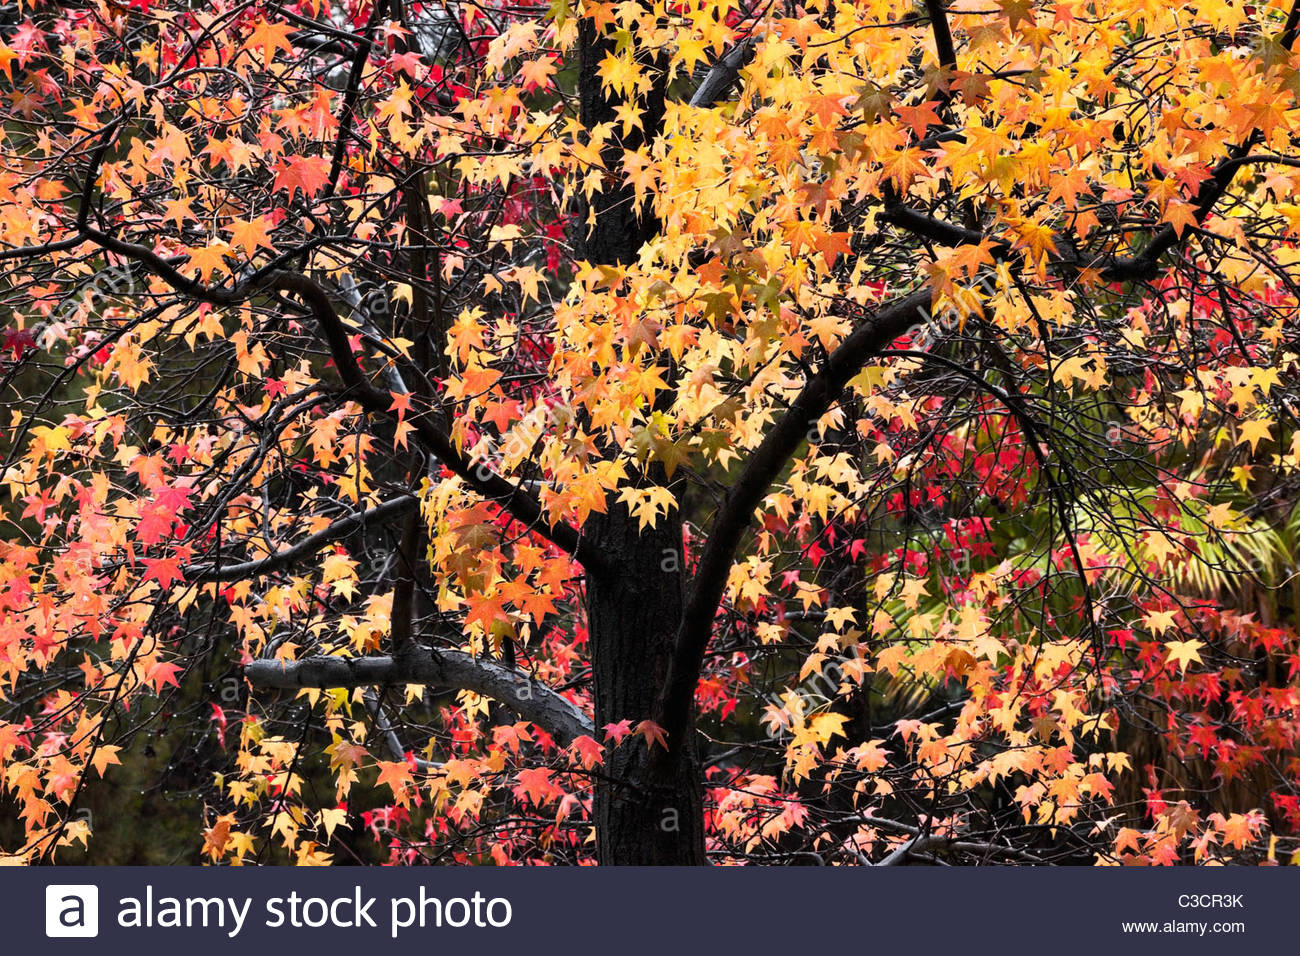 Fall Foliage, Angeles National Forest / Glendora, California - Stock Image